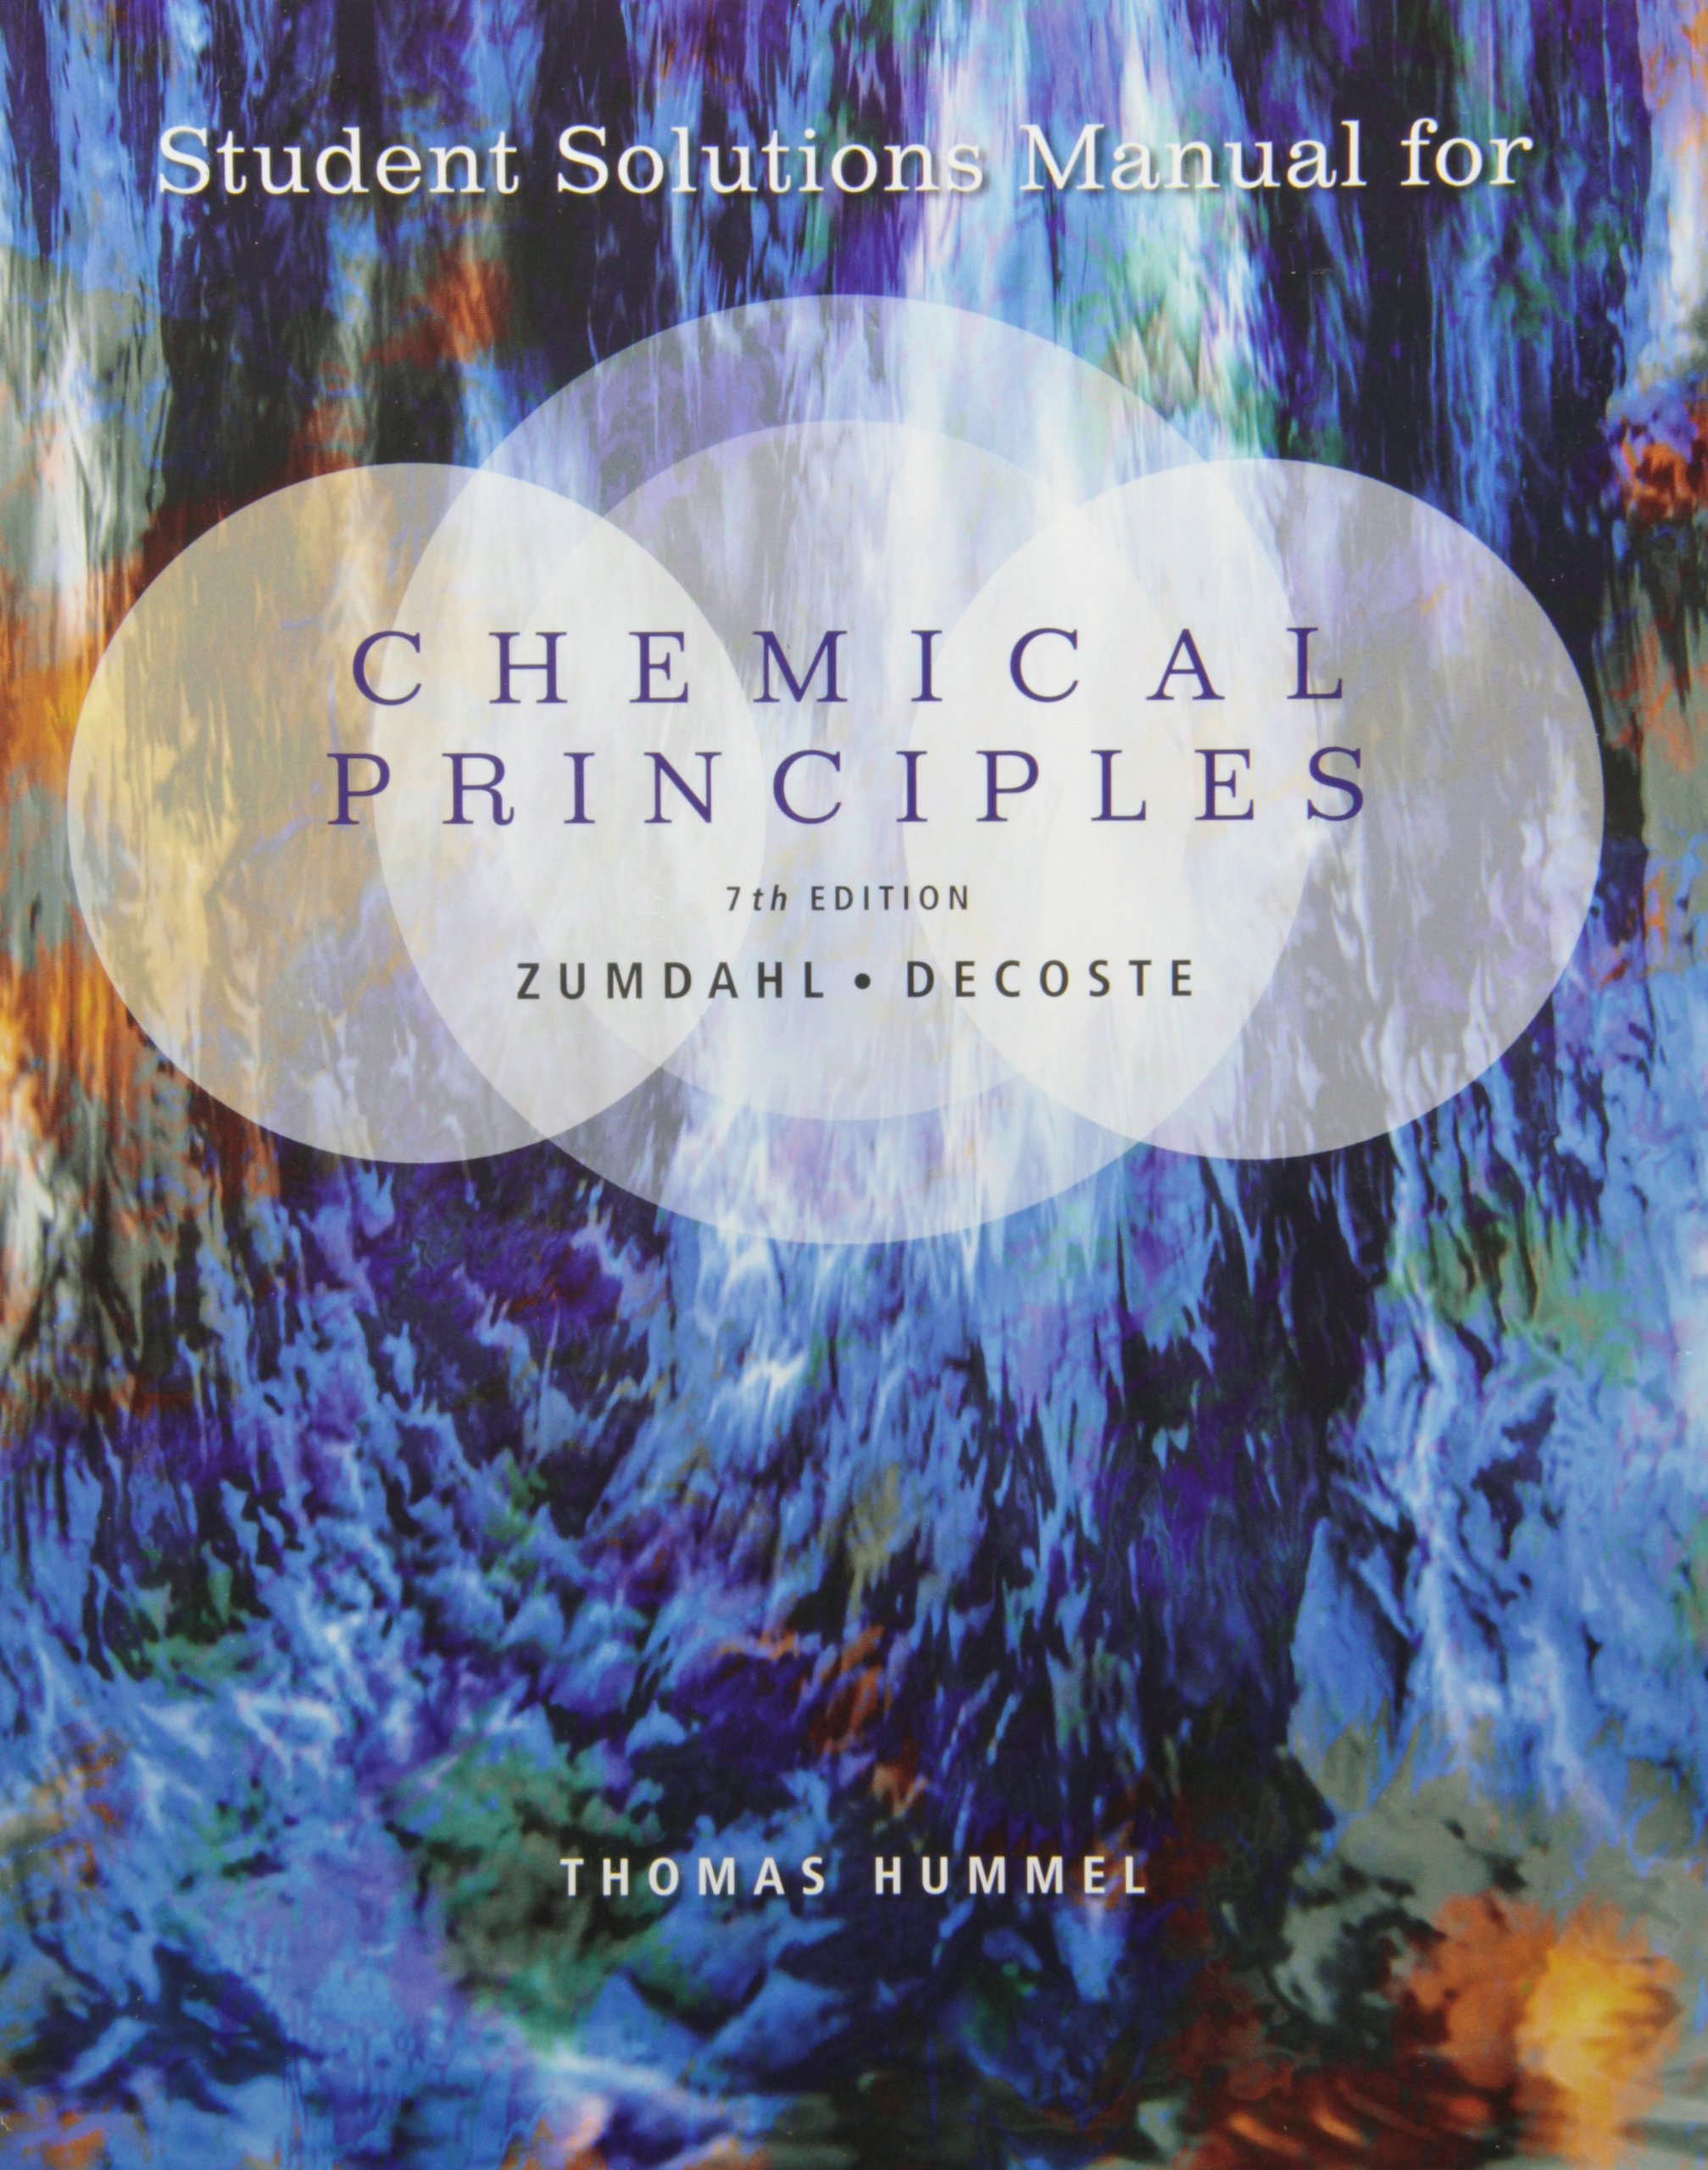 student solutions manual for zumdahl decoste s chemical principles rh amazon ca Steven S. Zumdahl Chemical Principles Zumdahl 7th Edition